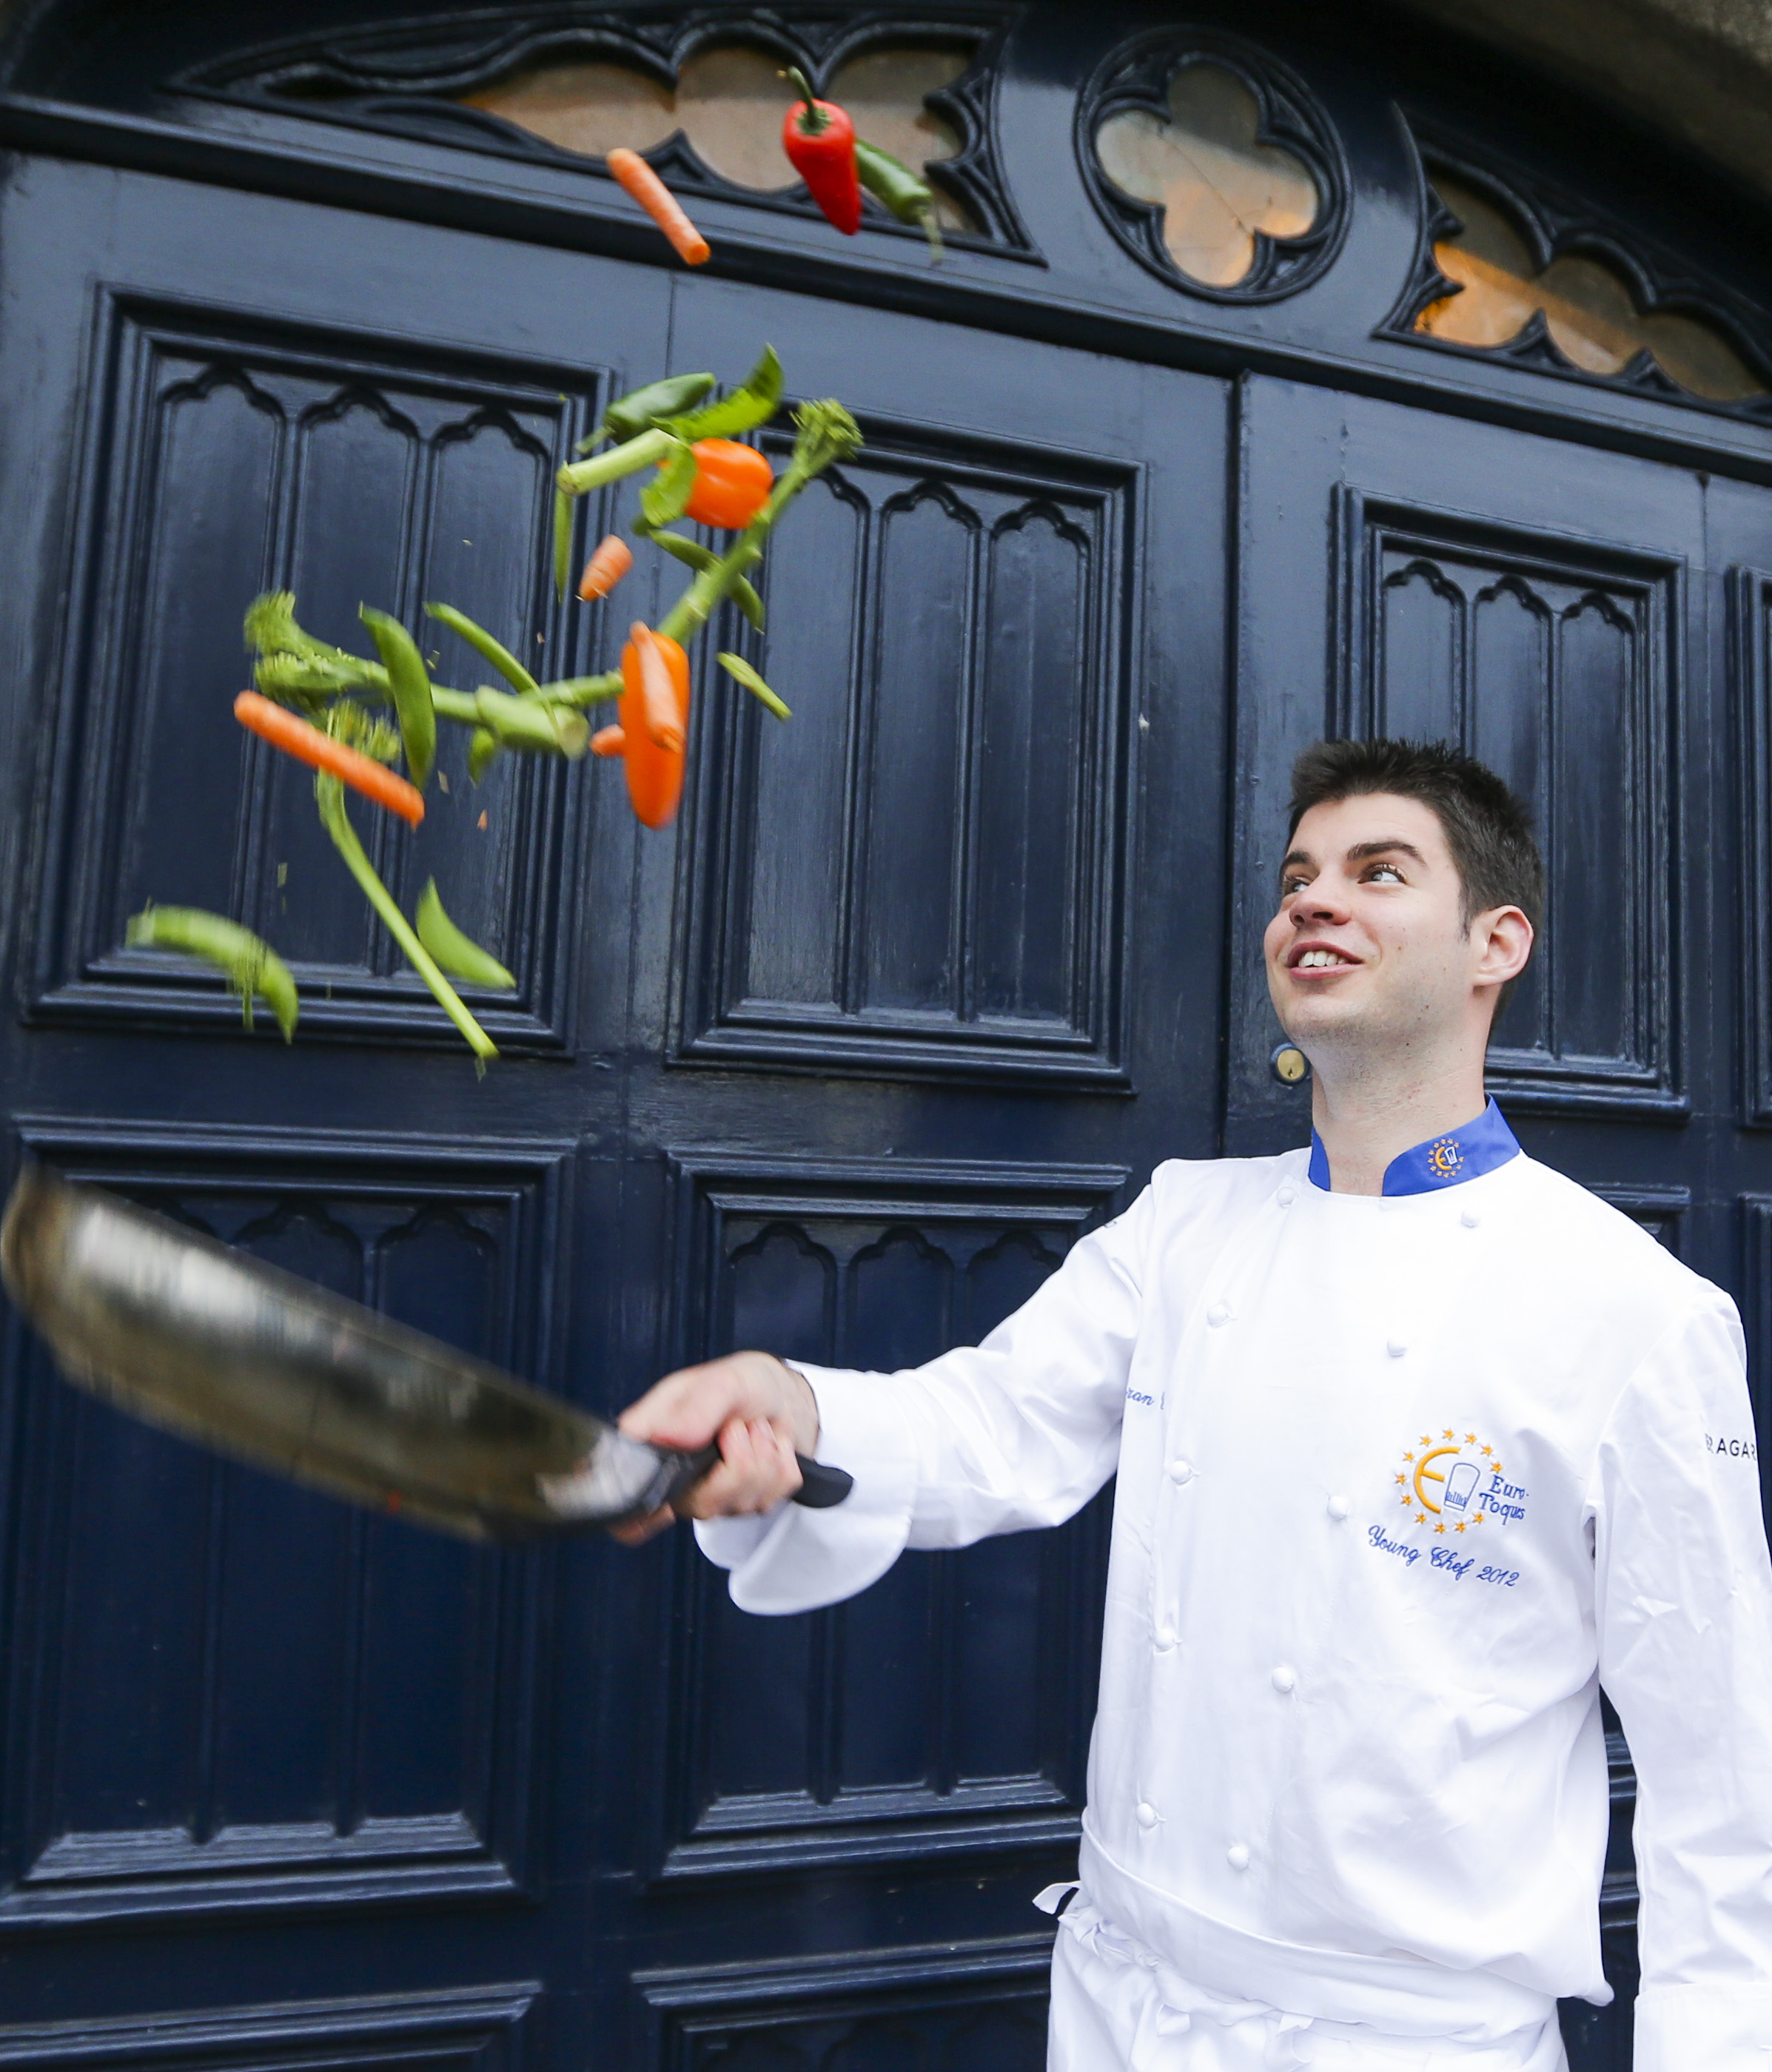 Euro toques Young Chef of the Year 2012